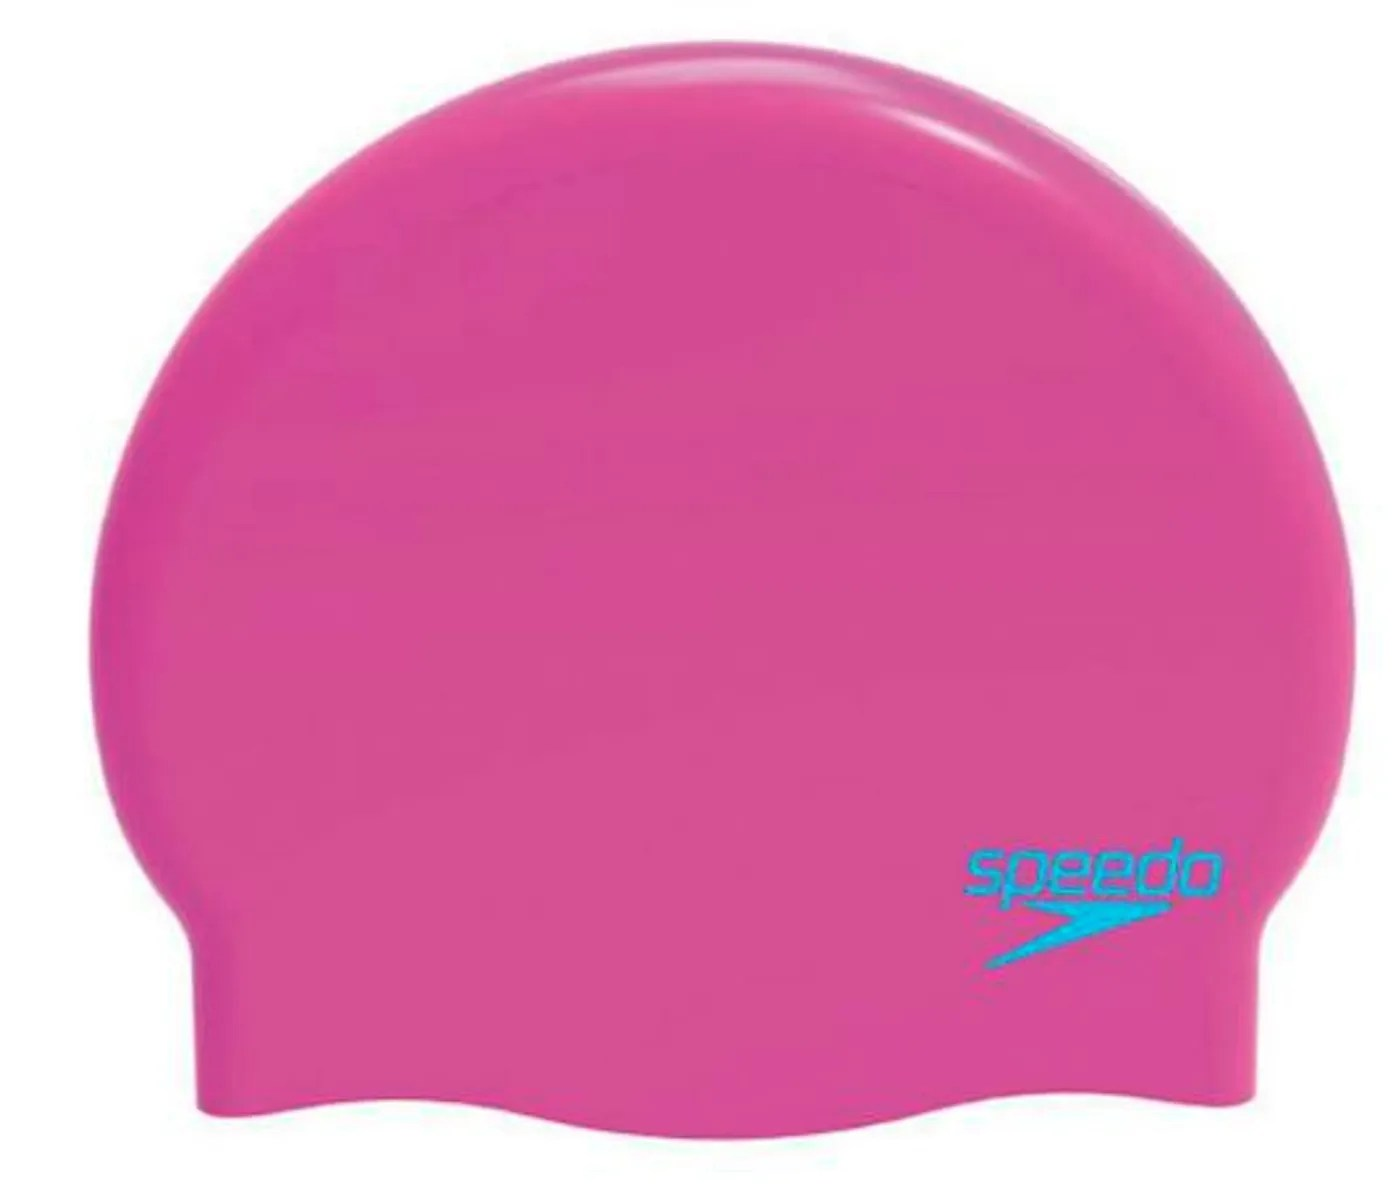 Badecape Kinder Speedo Plain Moulded Silicone Junior Badekappe Junior